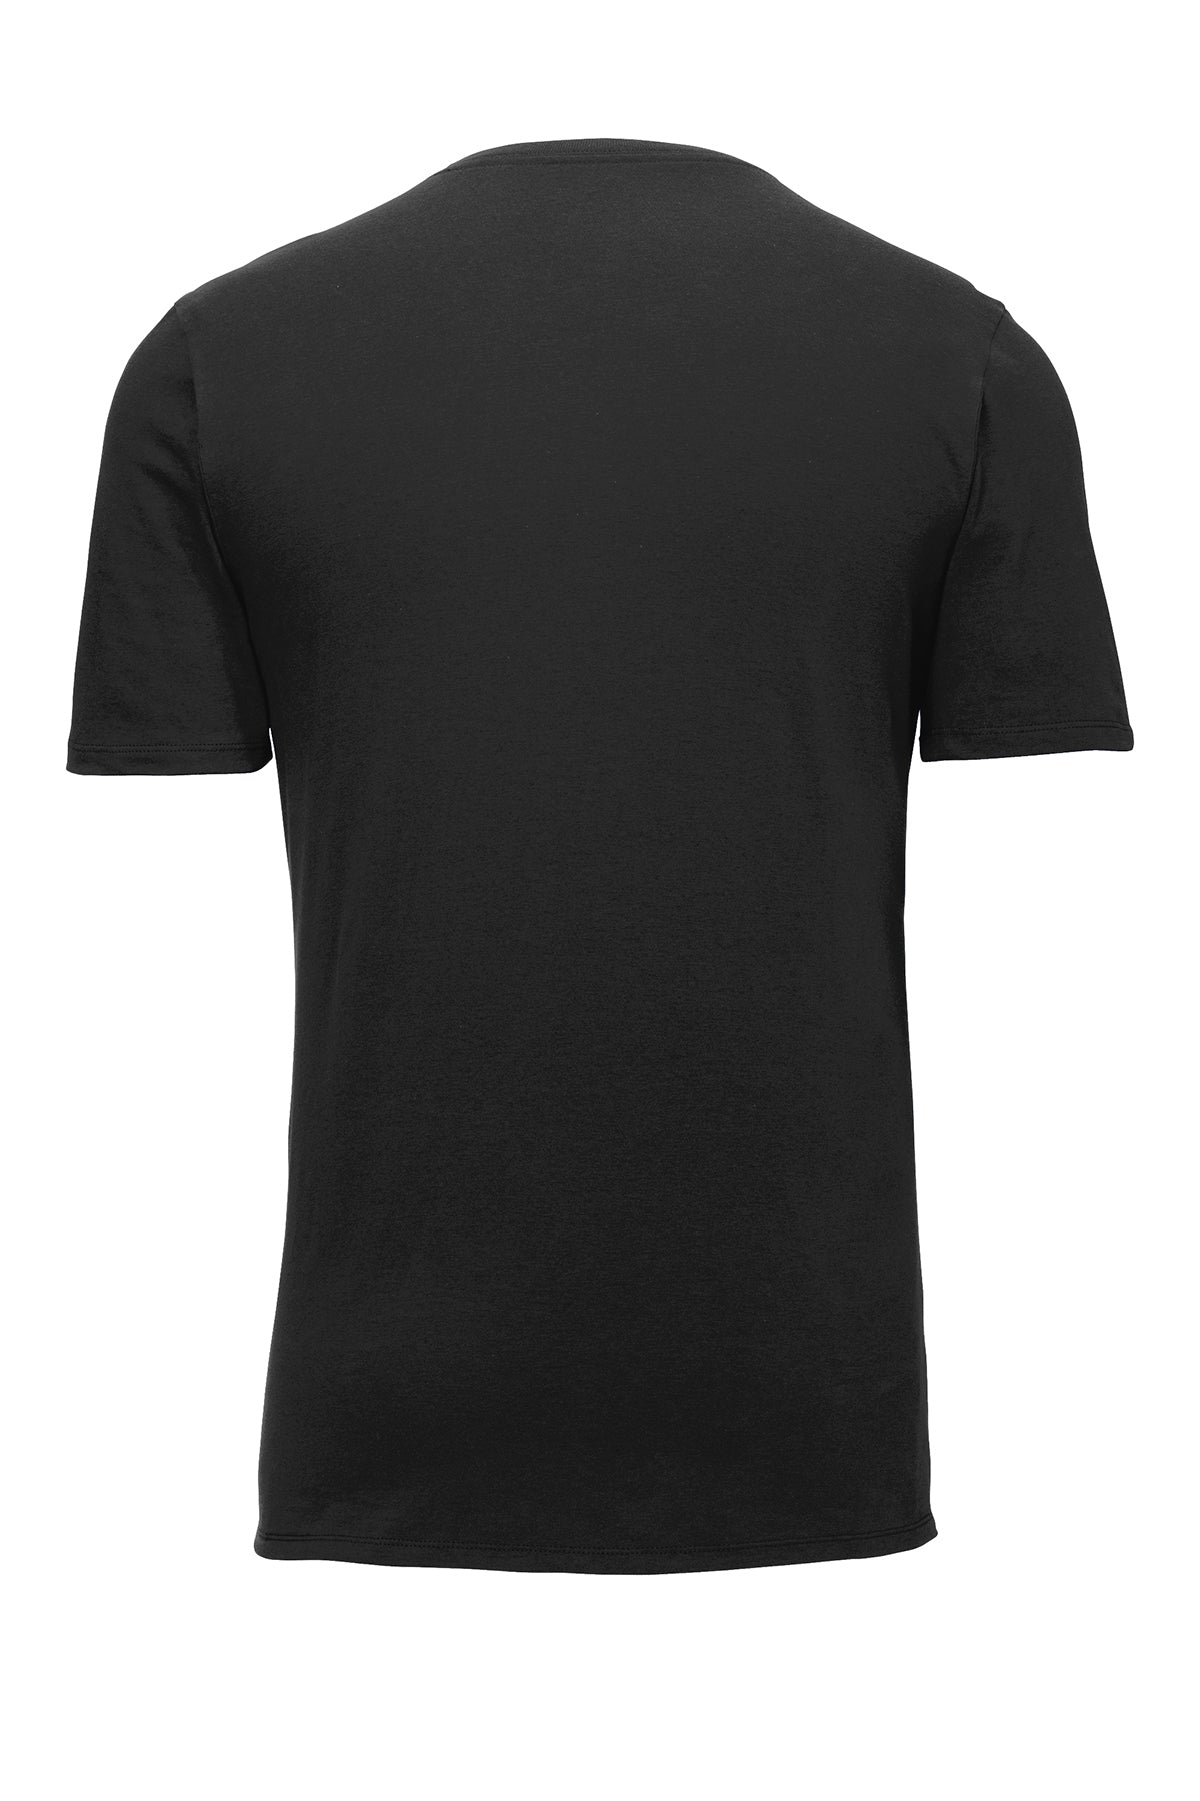 9c1d16ef34a2 Nike Core Cotton Tee BLACK – Strayer Gift Store